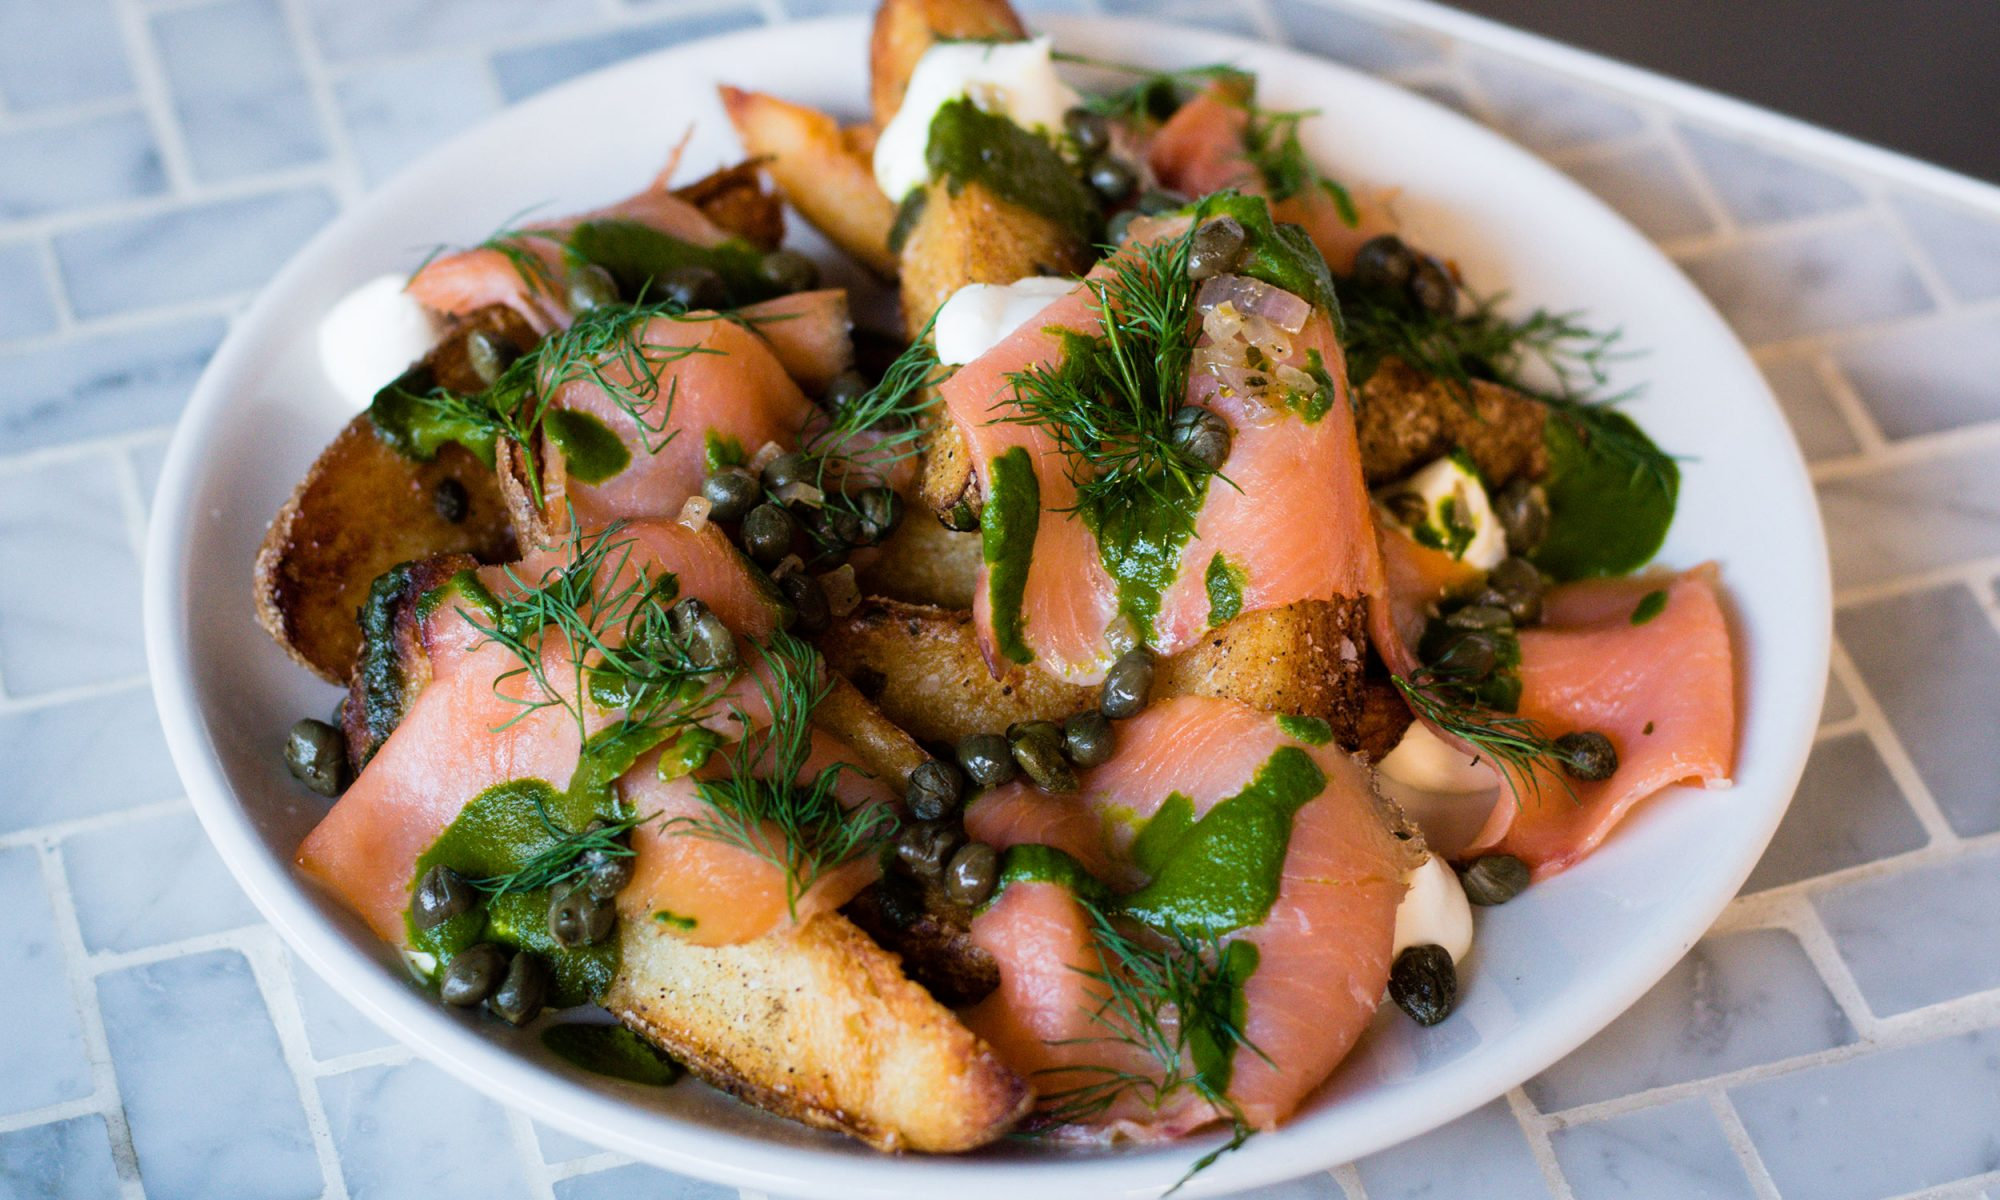 EC: Rider's Loaded Lox Fries Are Better Than Bagels and Lox